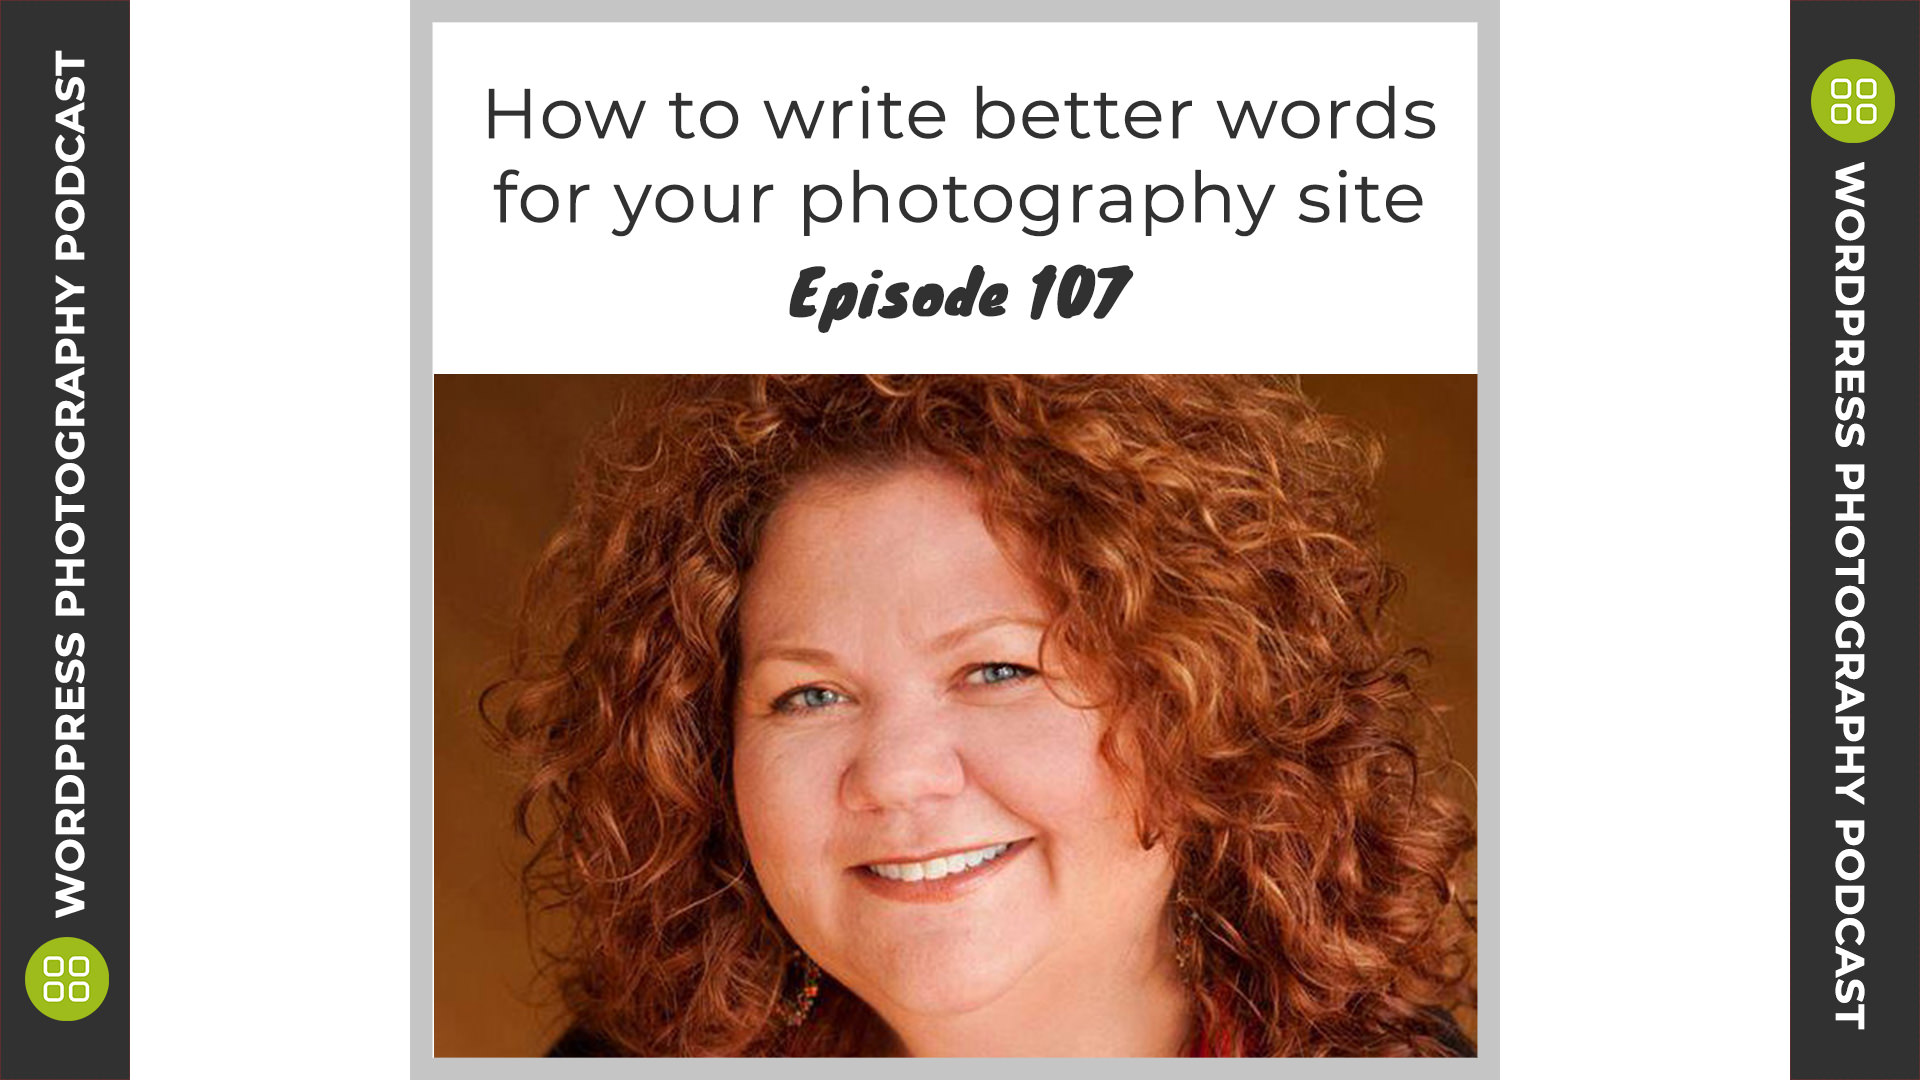 Episode 107 – How to write better words for your photography site with Kimberley Anderson